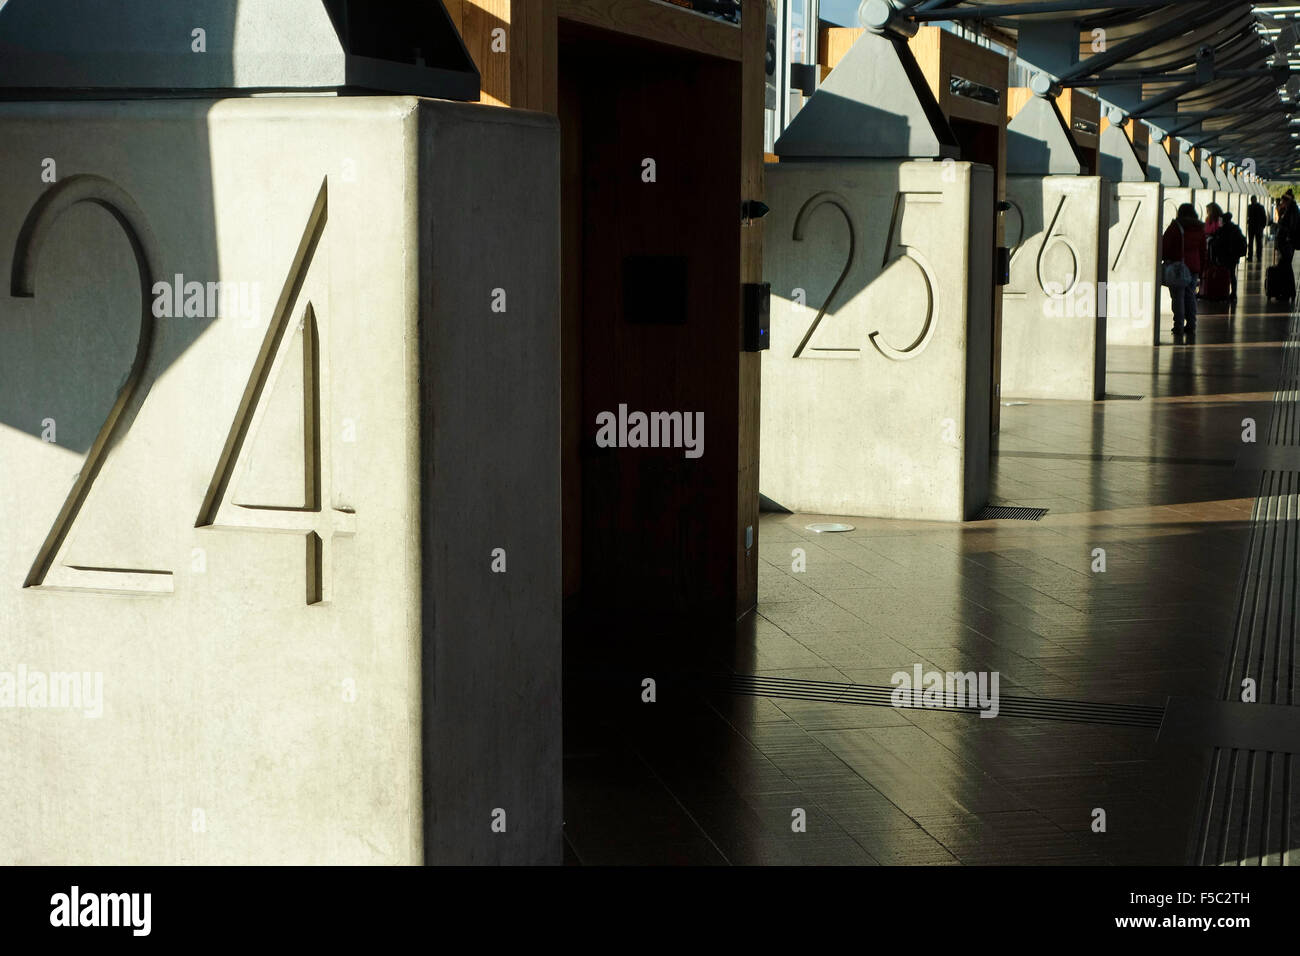 Numbered bus terminals entrances in Nils Ericson bas station in Göthenburg, Sweden - Stock Image